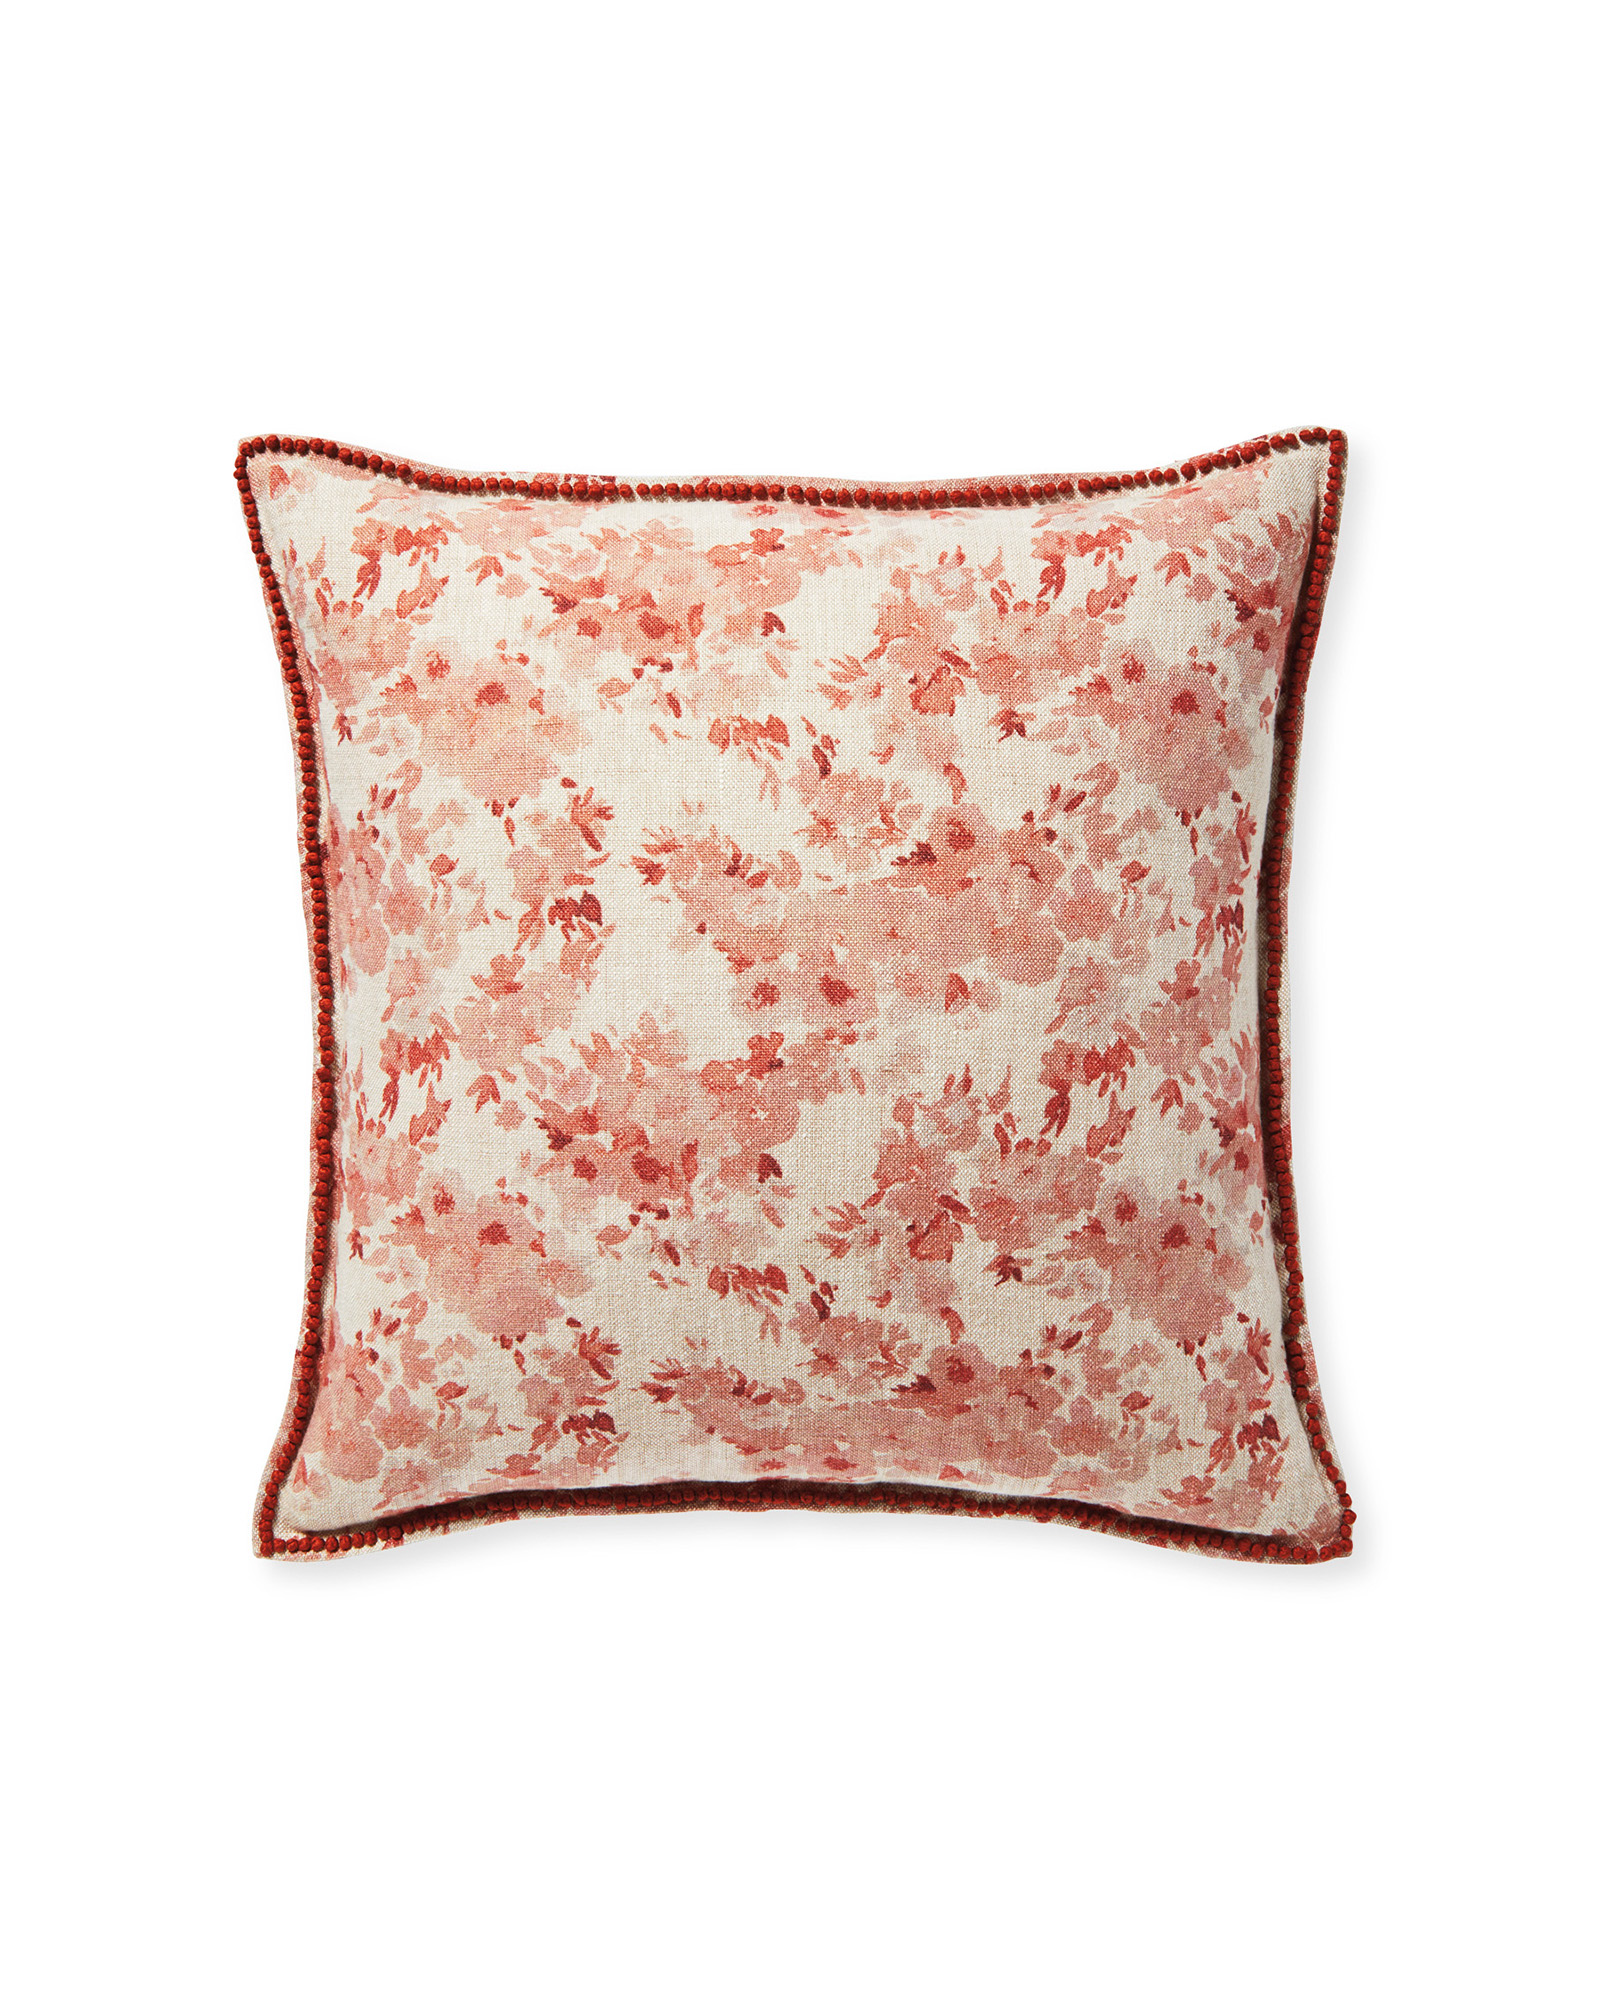 Somerset Pillow Cover, Wild Rose